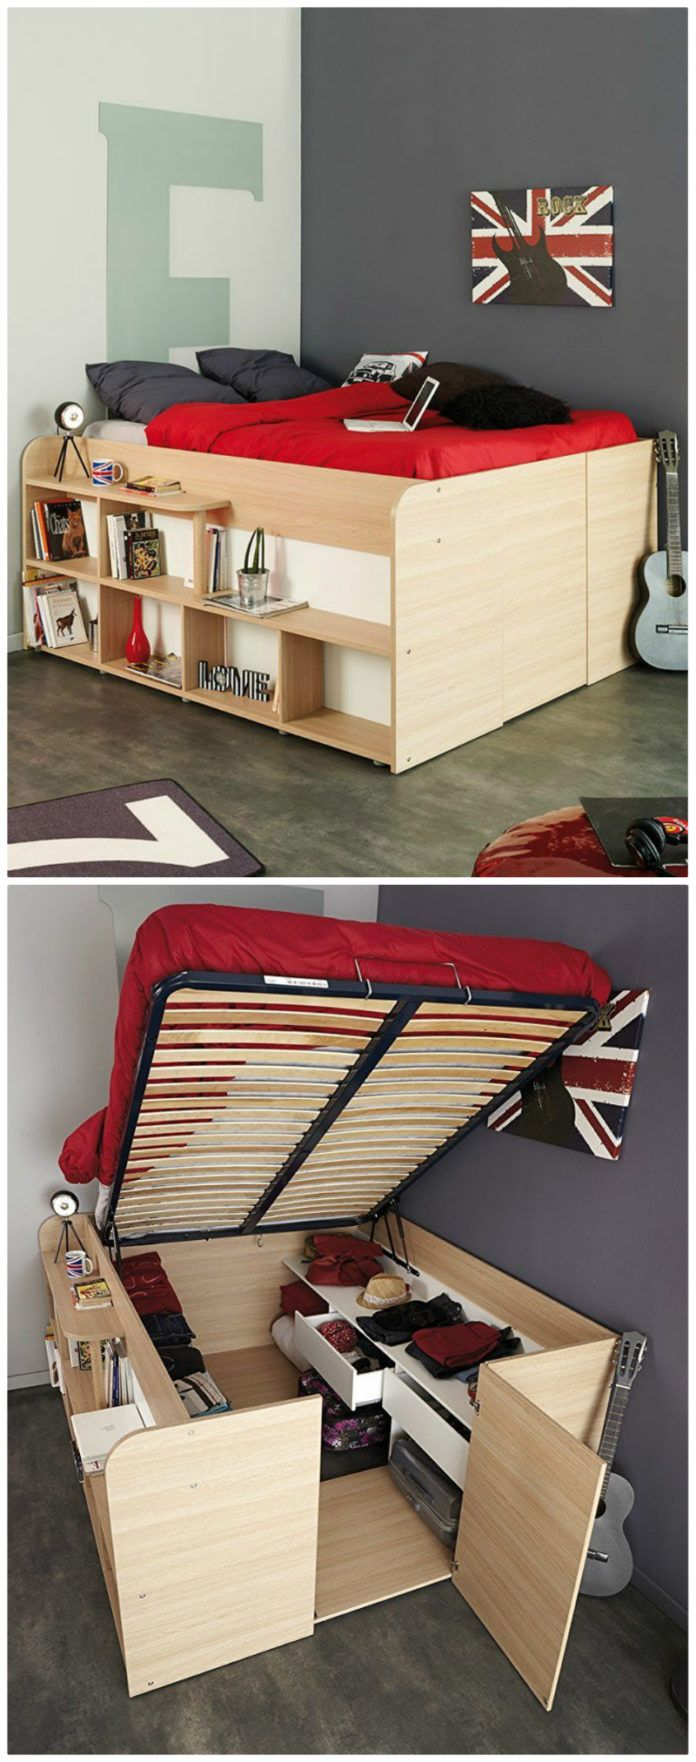 Get some extra mileage out of your sleeping space with these 12 storage beds